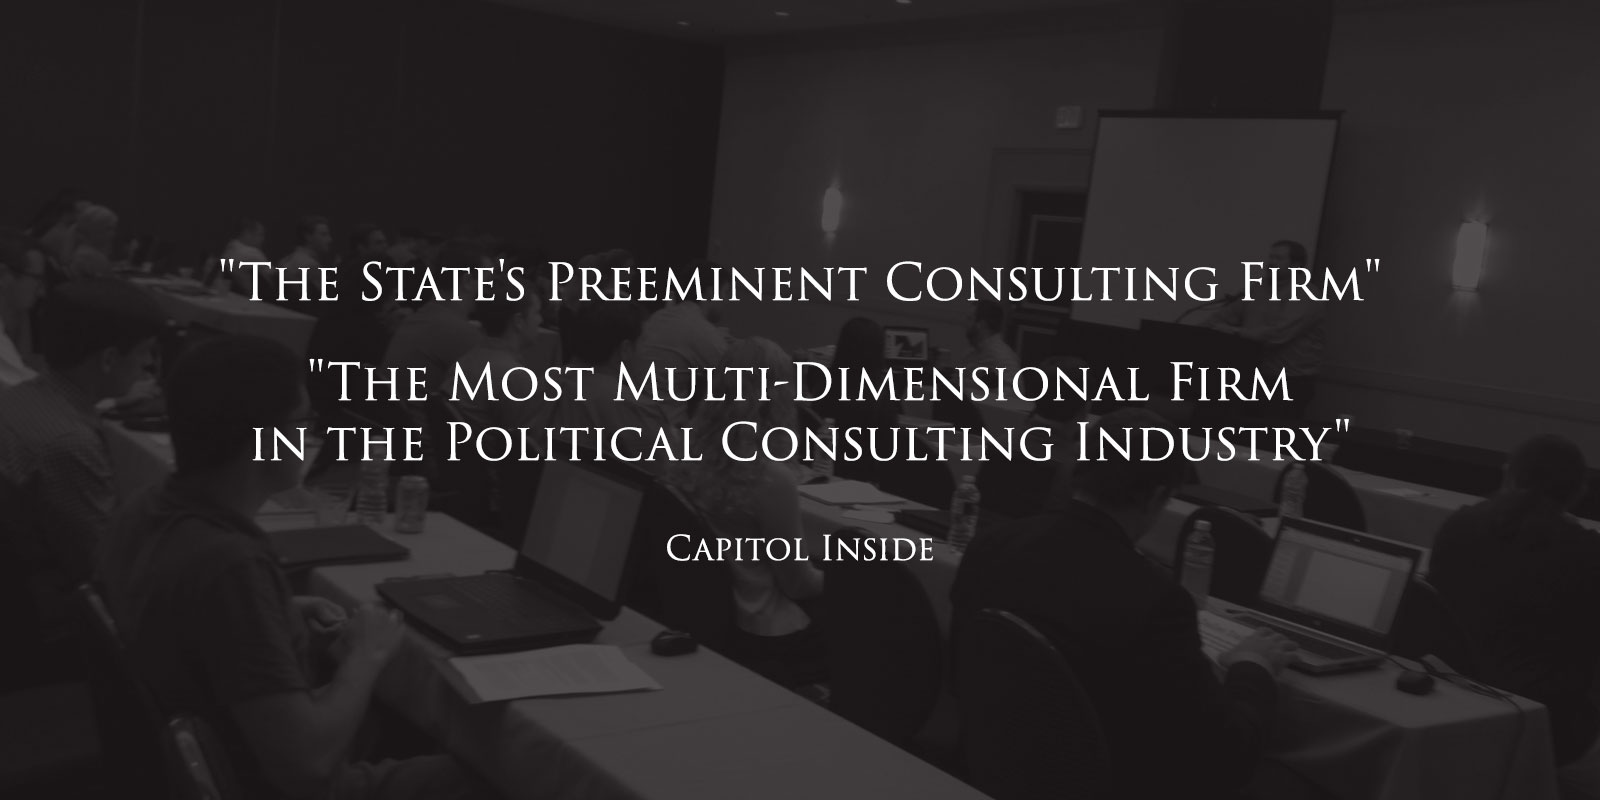 The State's Preeminent Consulting Firm and the Most Multi-Dimensional Firm in the Political Consulting Industry